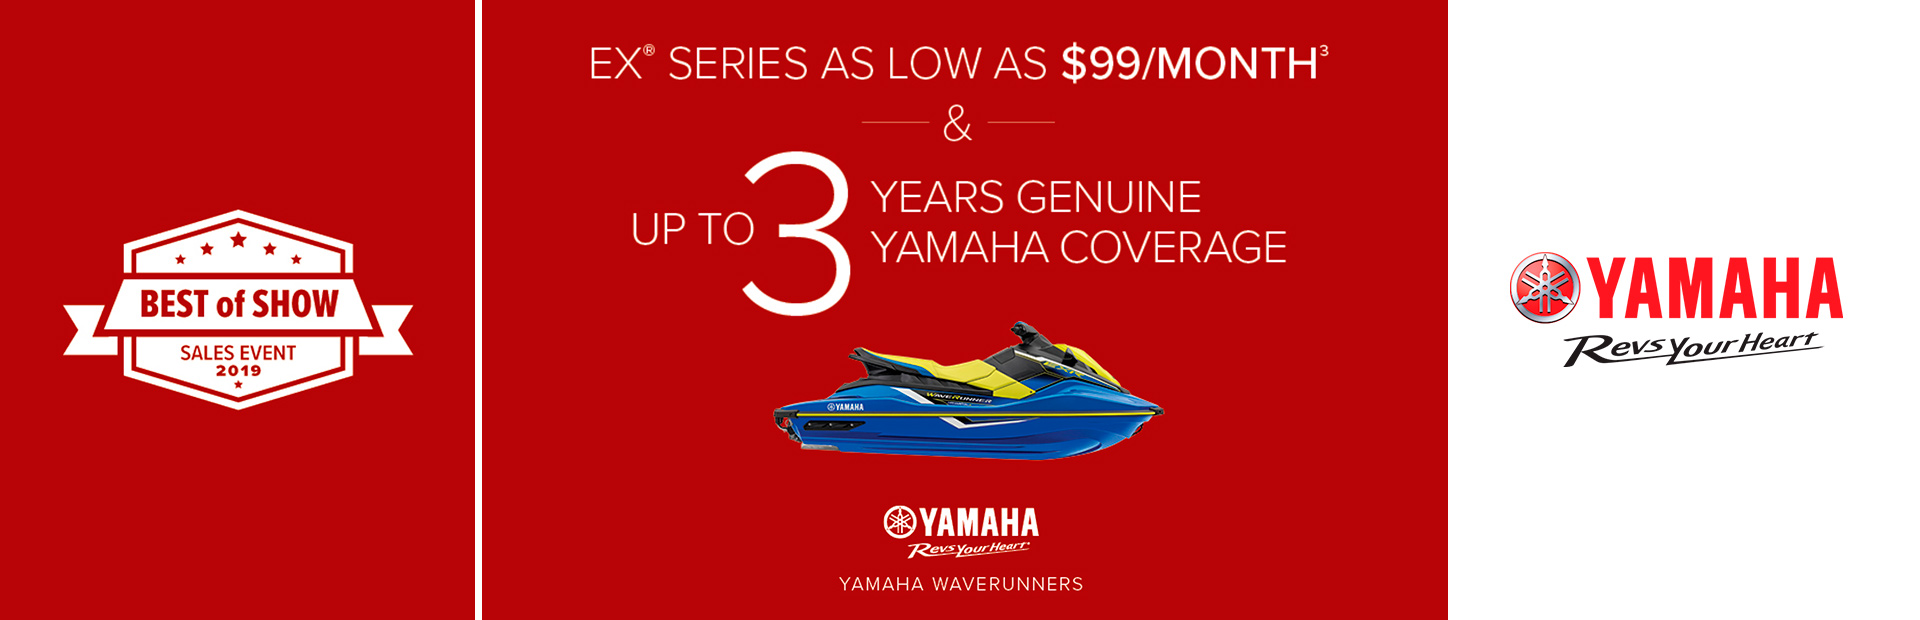 Yamaha: Best of Show - EX Series As Low As $99/Month